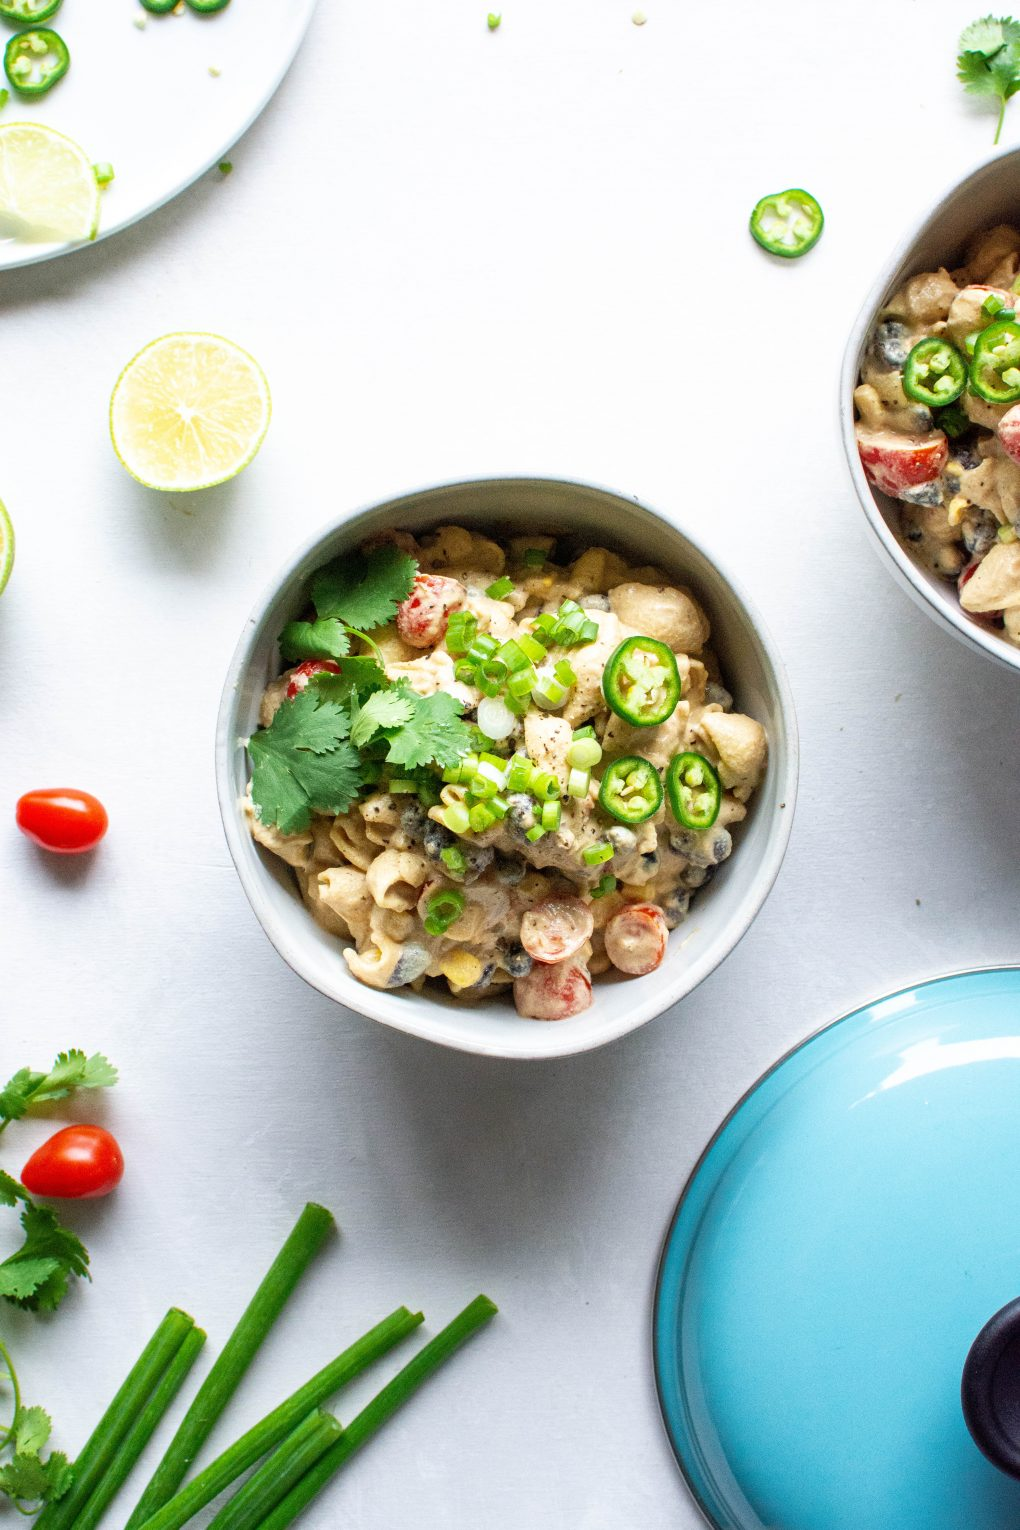 Two side by side bowls of vegan mexican mac and cheese topped with green onions, jalapeno, and fresh cilantro. On a light background surrounded by sliced lime, cherry tomatoes, and fresh herb.